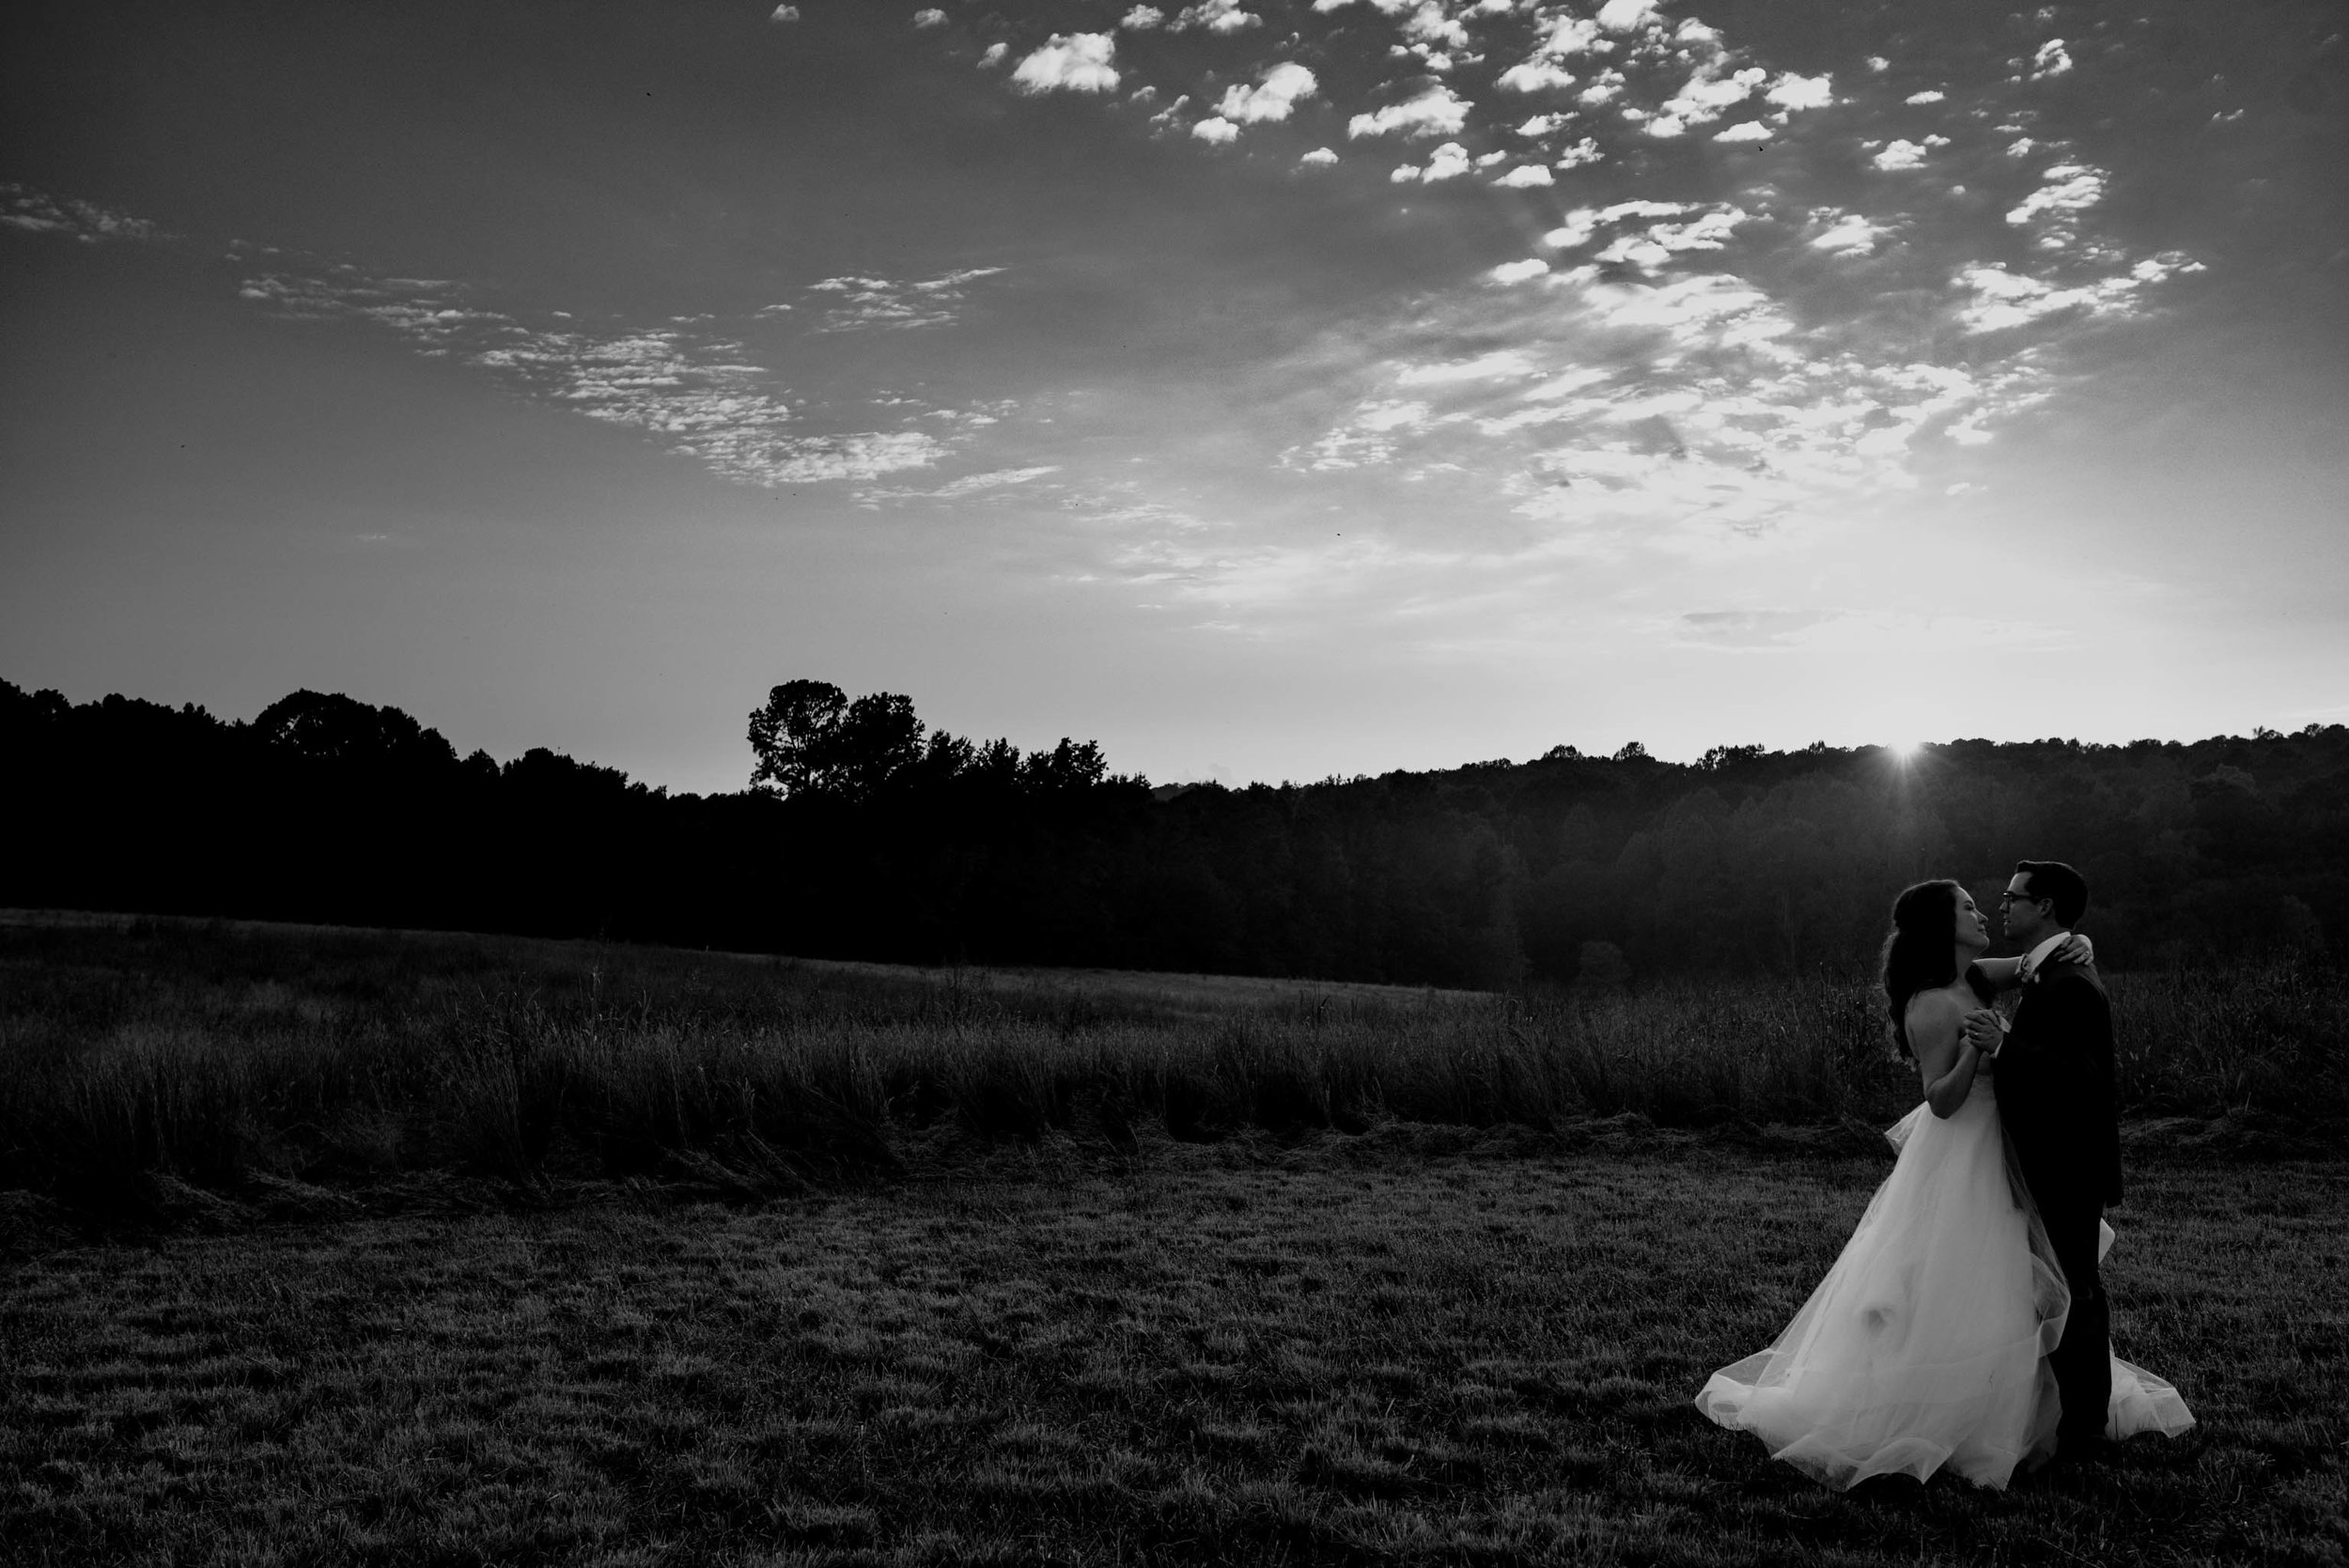 black and white photo of the bride and groom dancing in the sunset in a field during their wedding